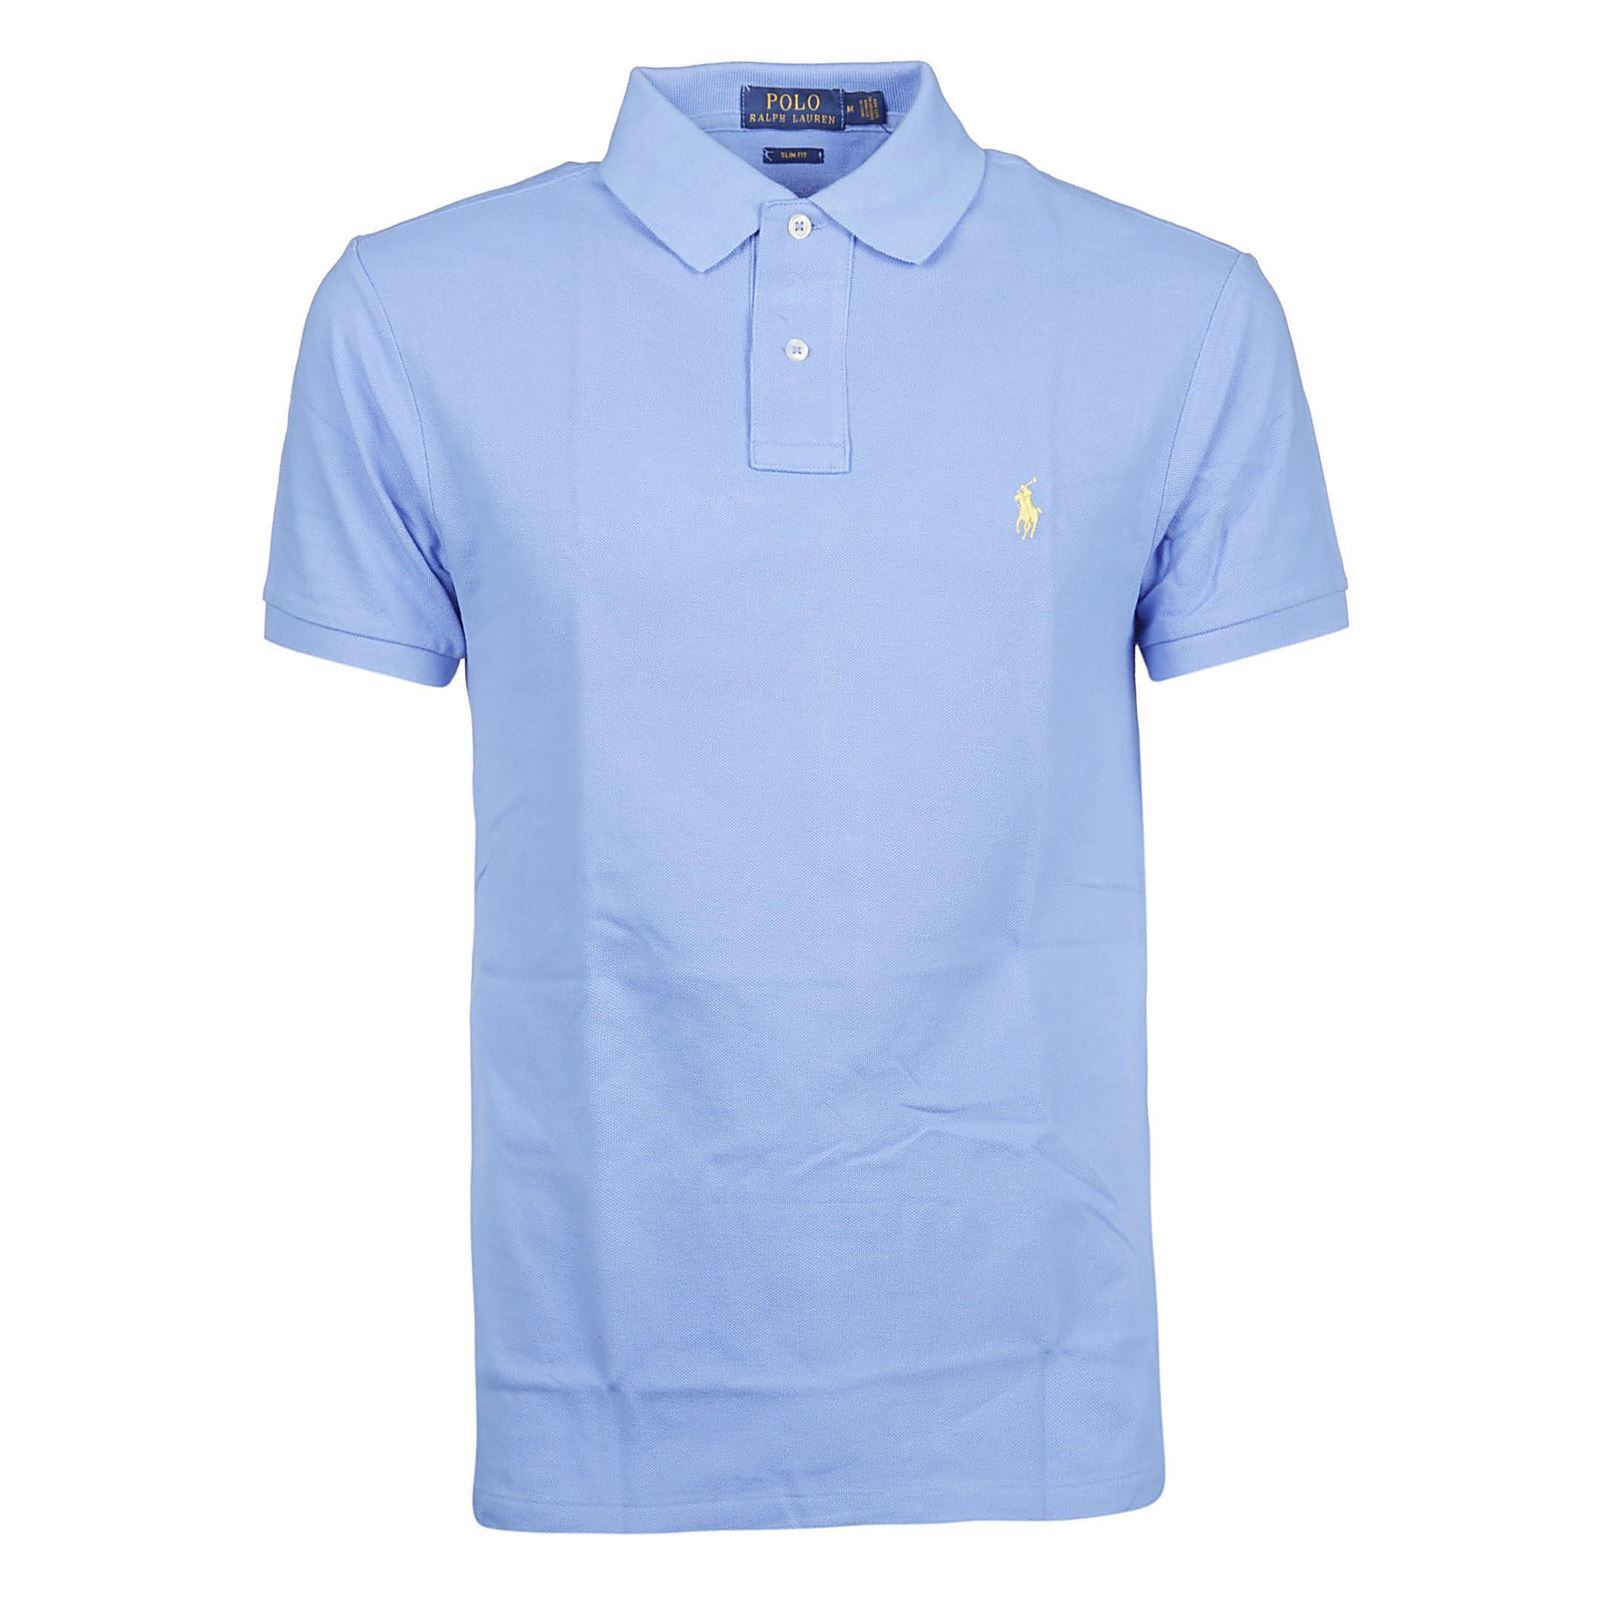 V Manches Polo Ralph CourtesBleu Homme Lauren FKJcl1